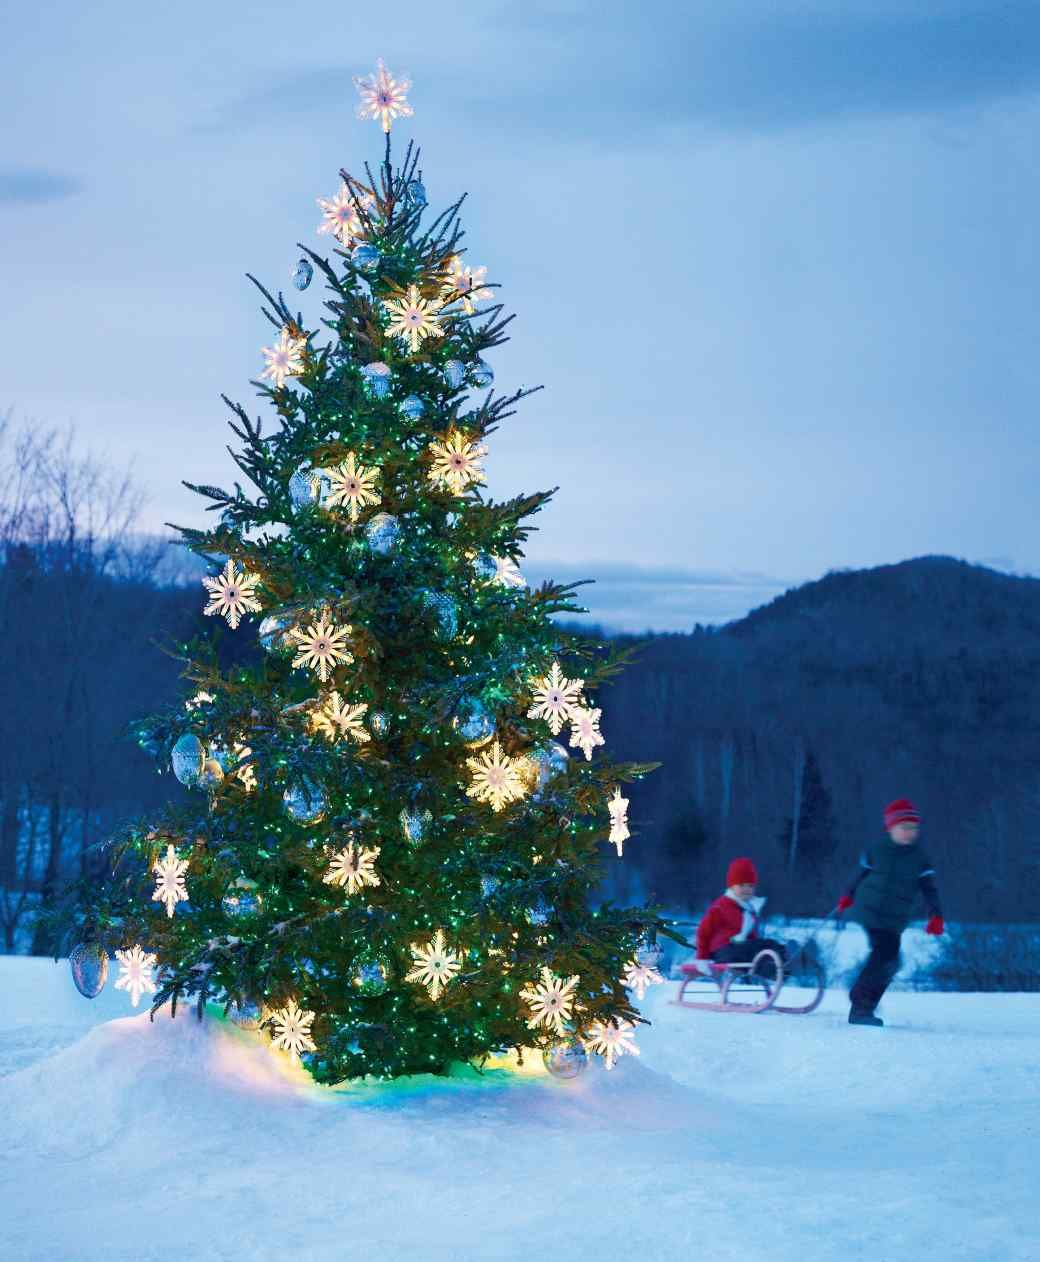 How To String Lights On A Christmas Tree Amusing Outdoor Christmas Tree With Snowflakes Glass Balls And String